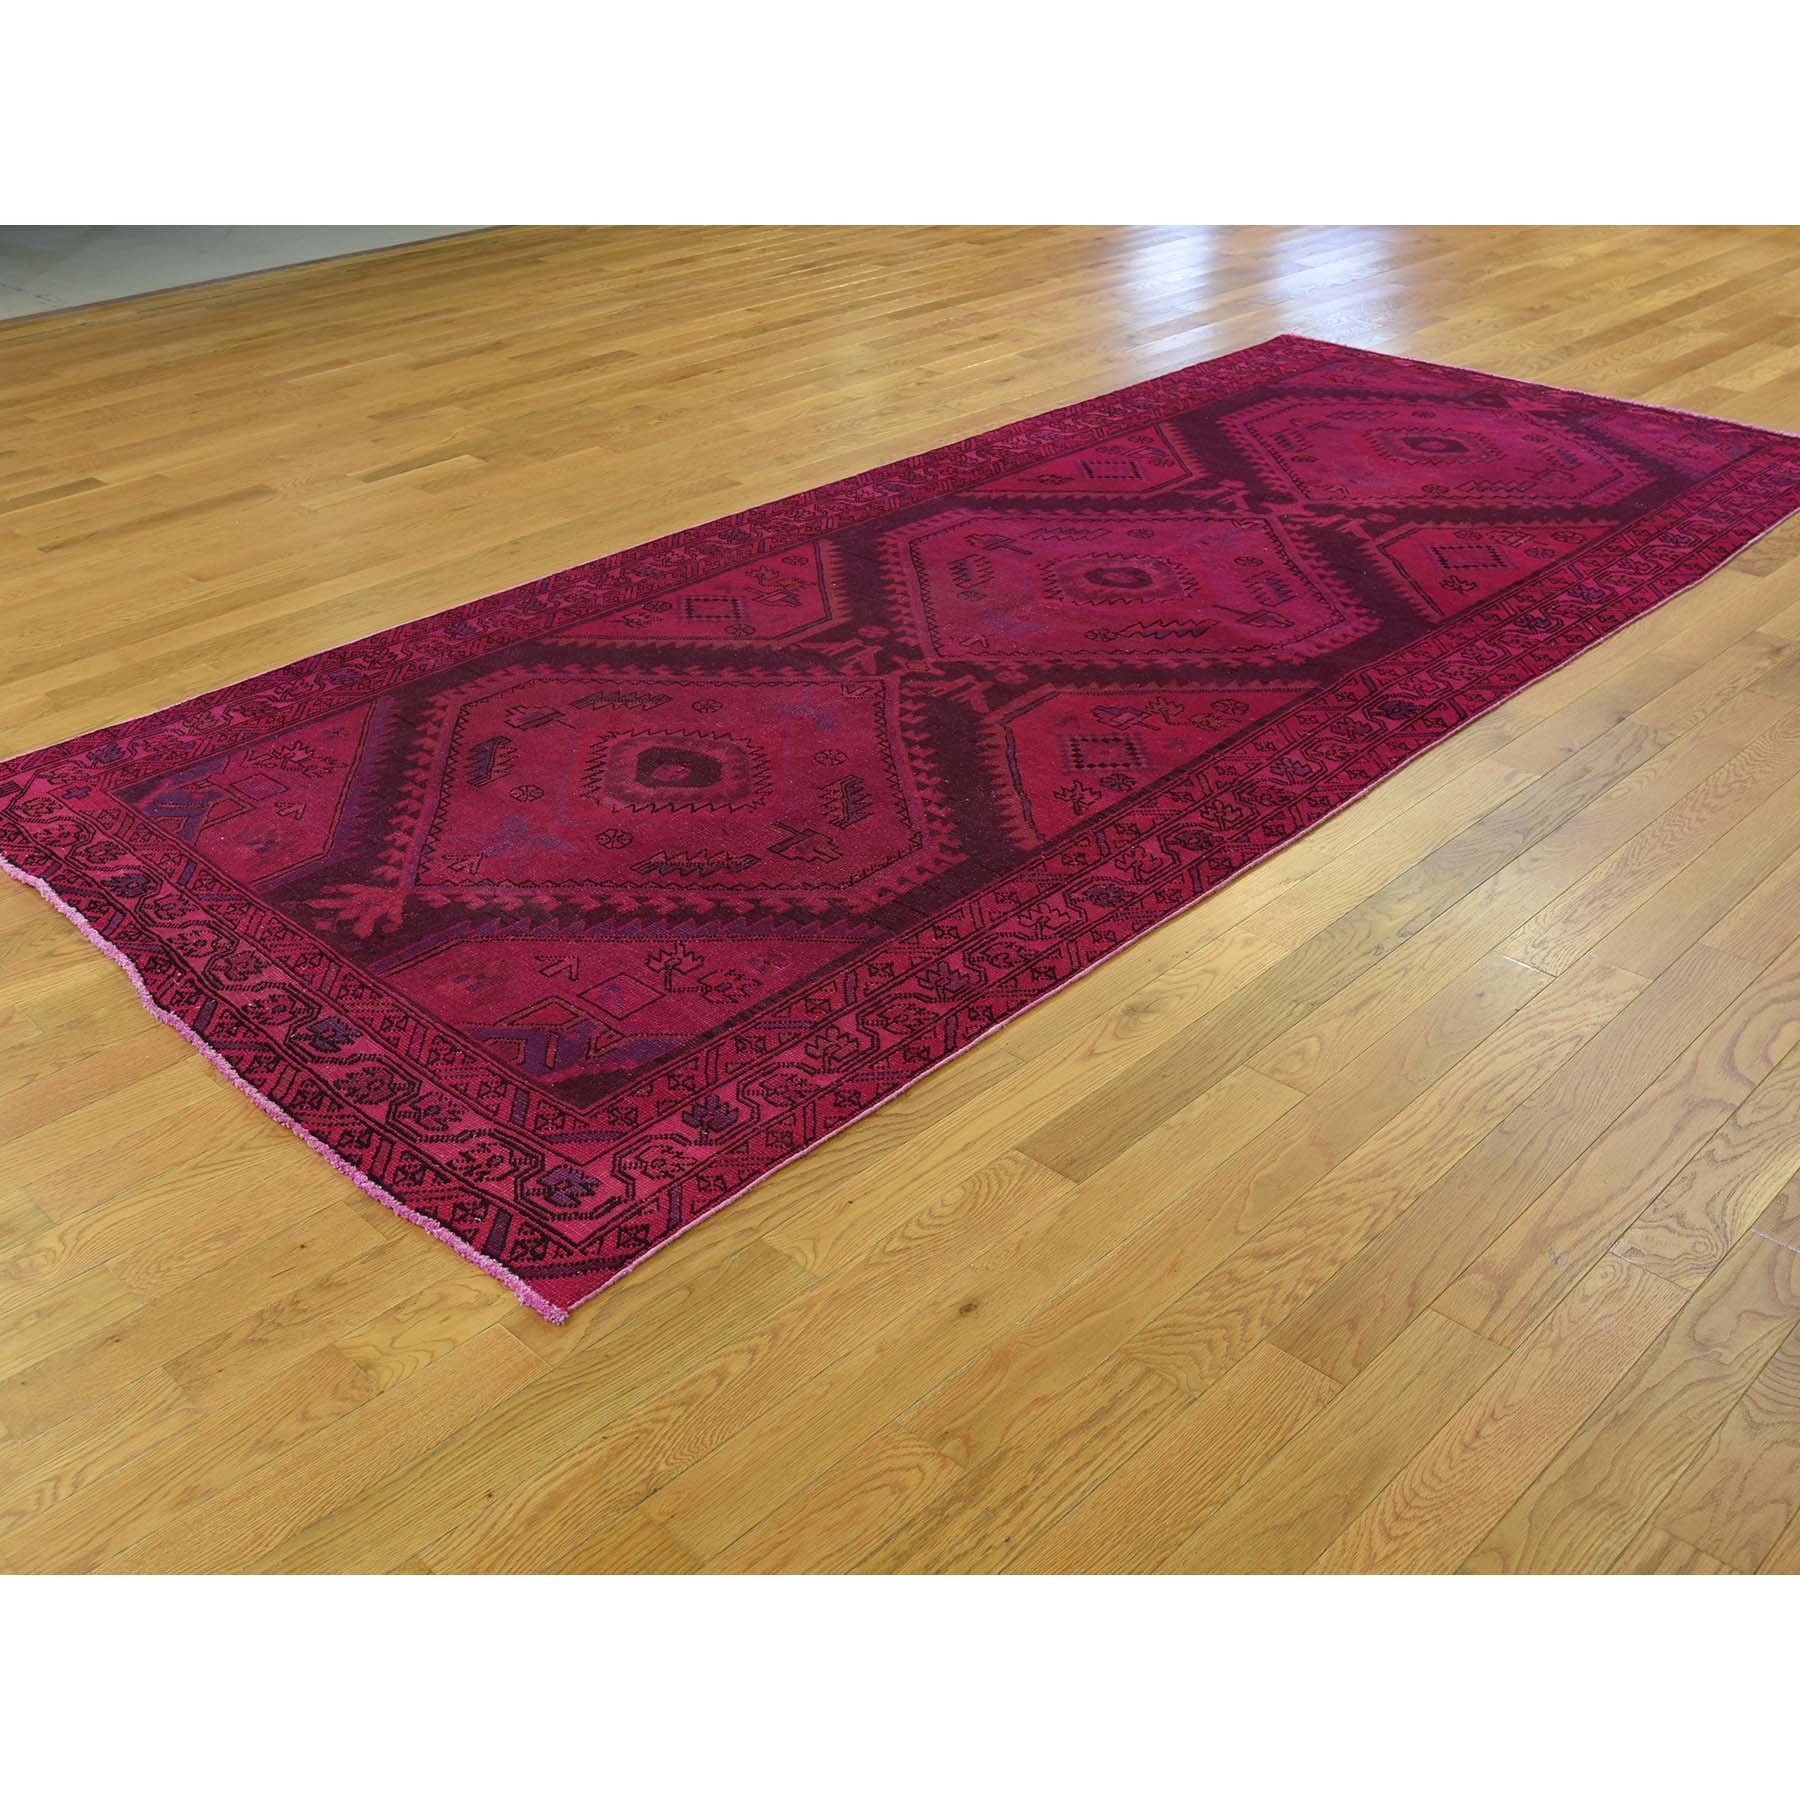 4-9--x10-9-- Overdyed Persian Hamadan Worn Hand-Knotted Wide Runner Rug